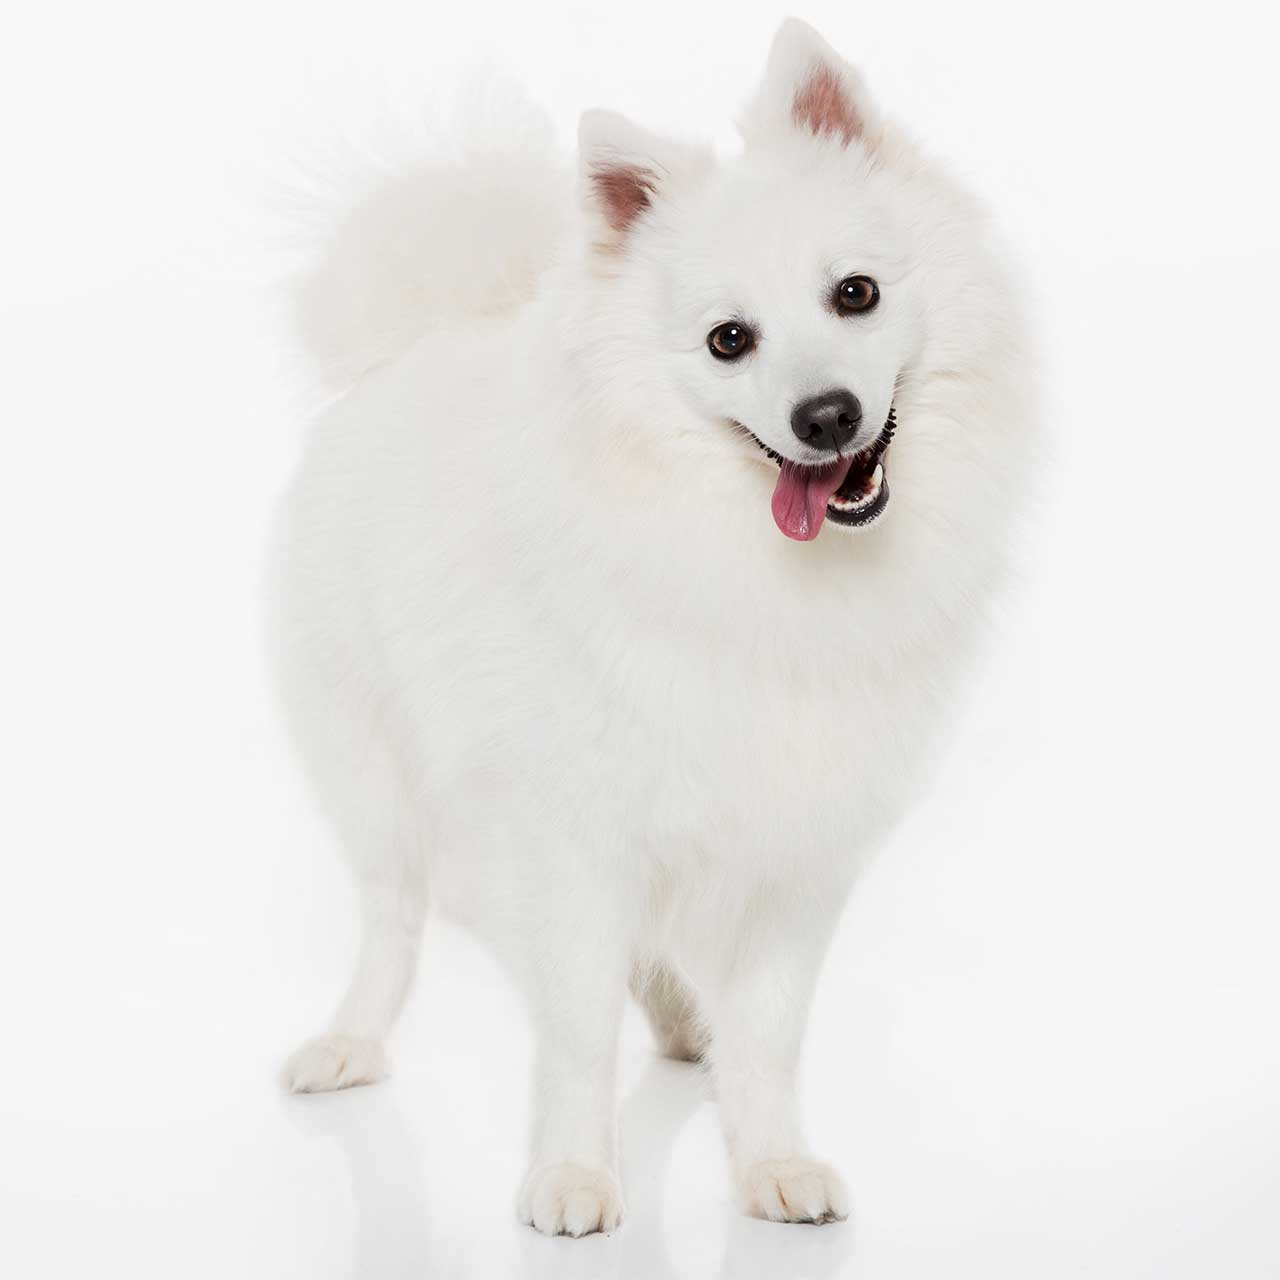 Japanese Spitz Dog Breed 187 Everything About Japanese Spitz